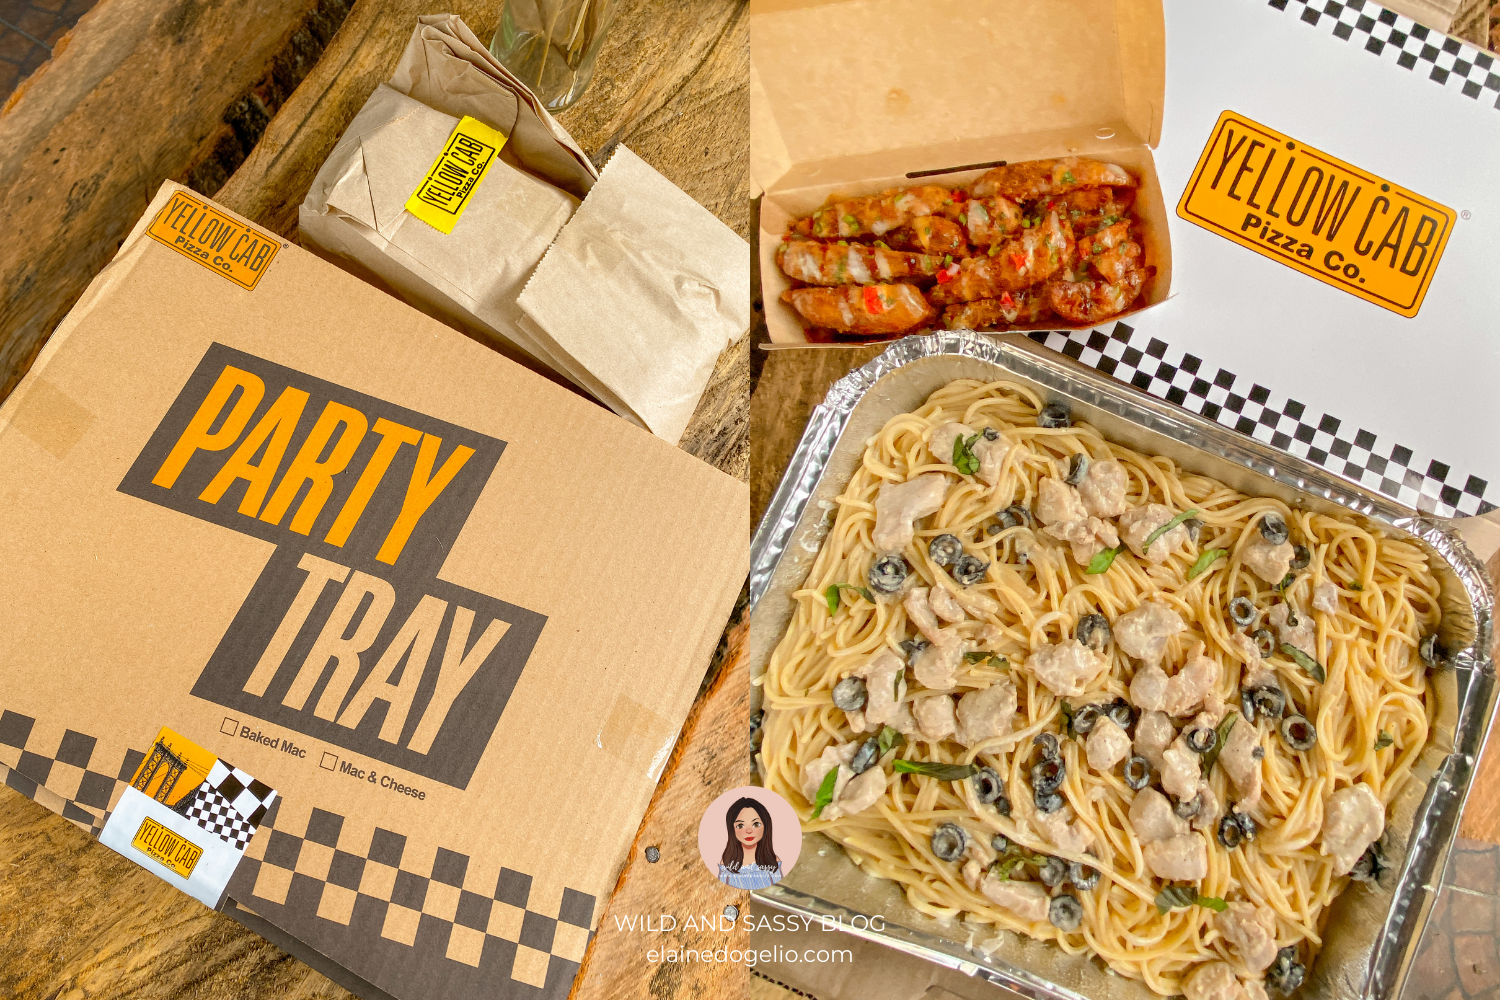 Yellow Cab Releases New Sloppy Wedges and Pasta Party Trays